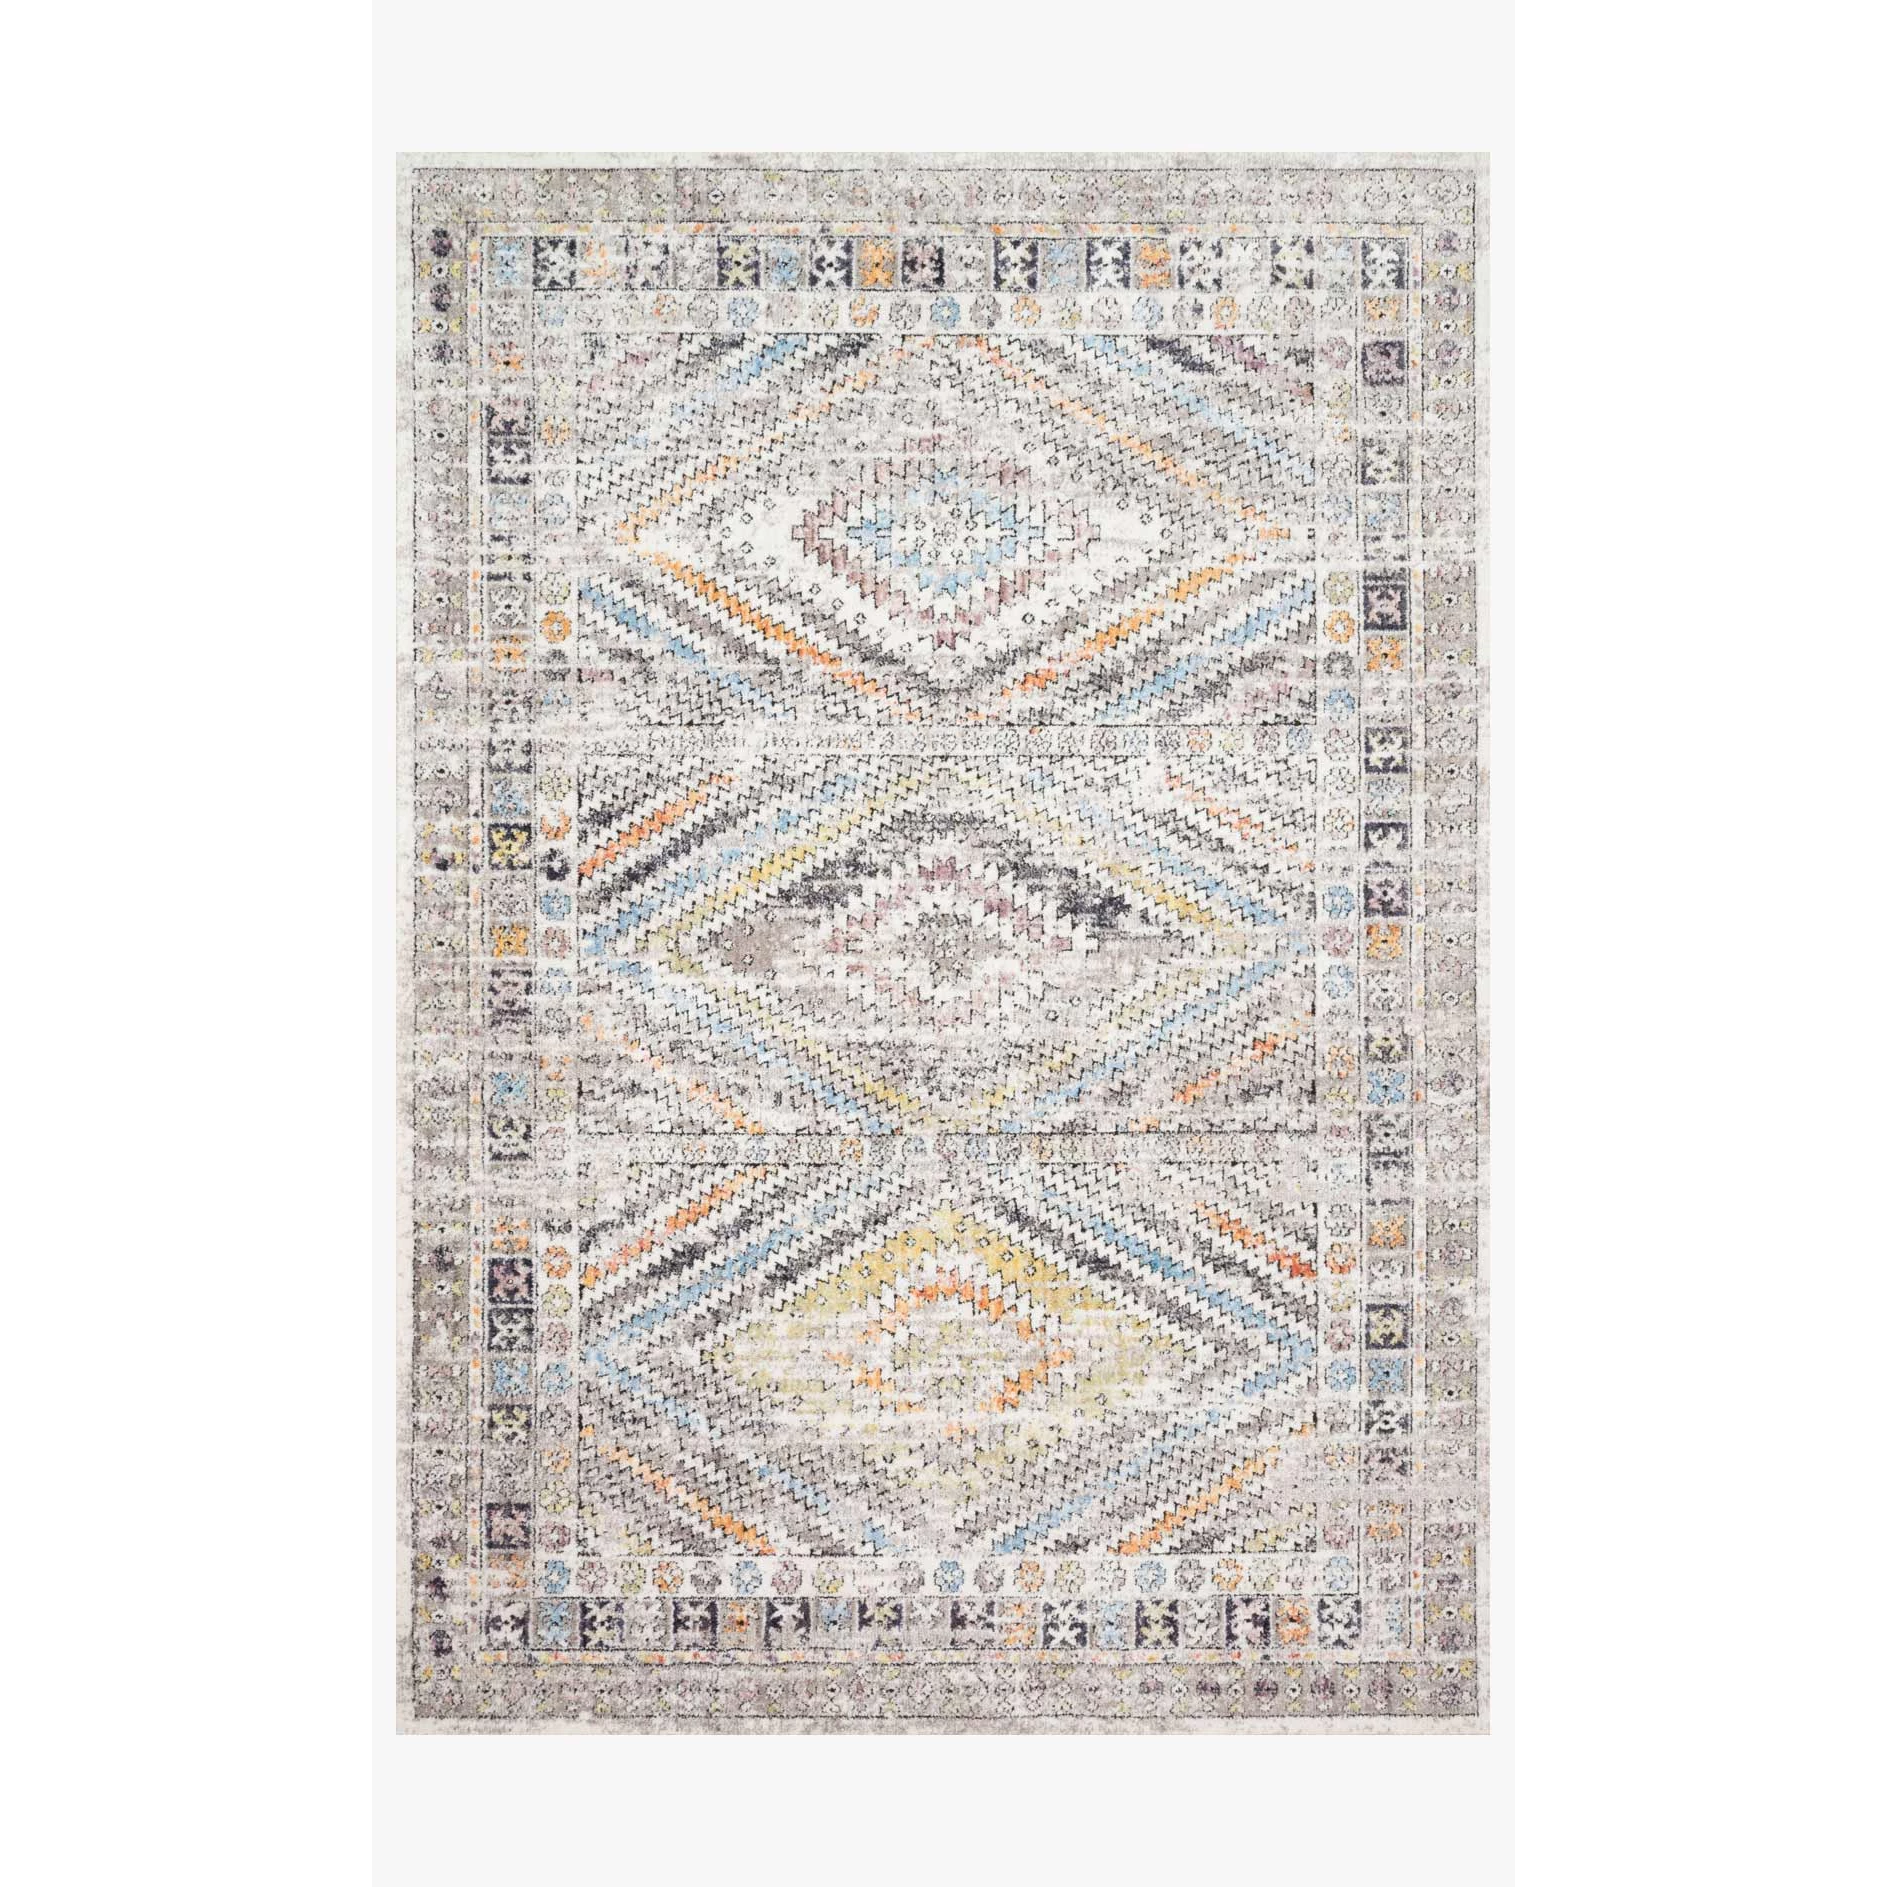 Dante Rugs by Loloi - DN-01 Ivory / Multi-Loloi Rugs-Blue Hand Home